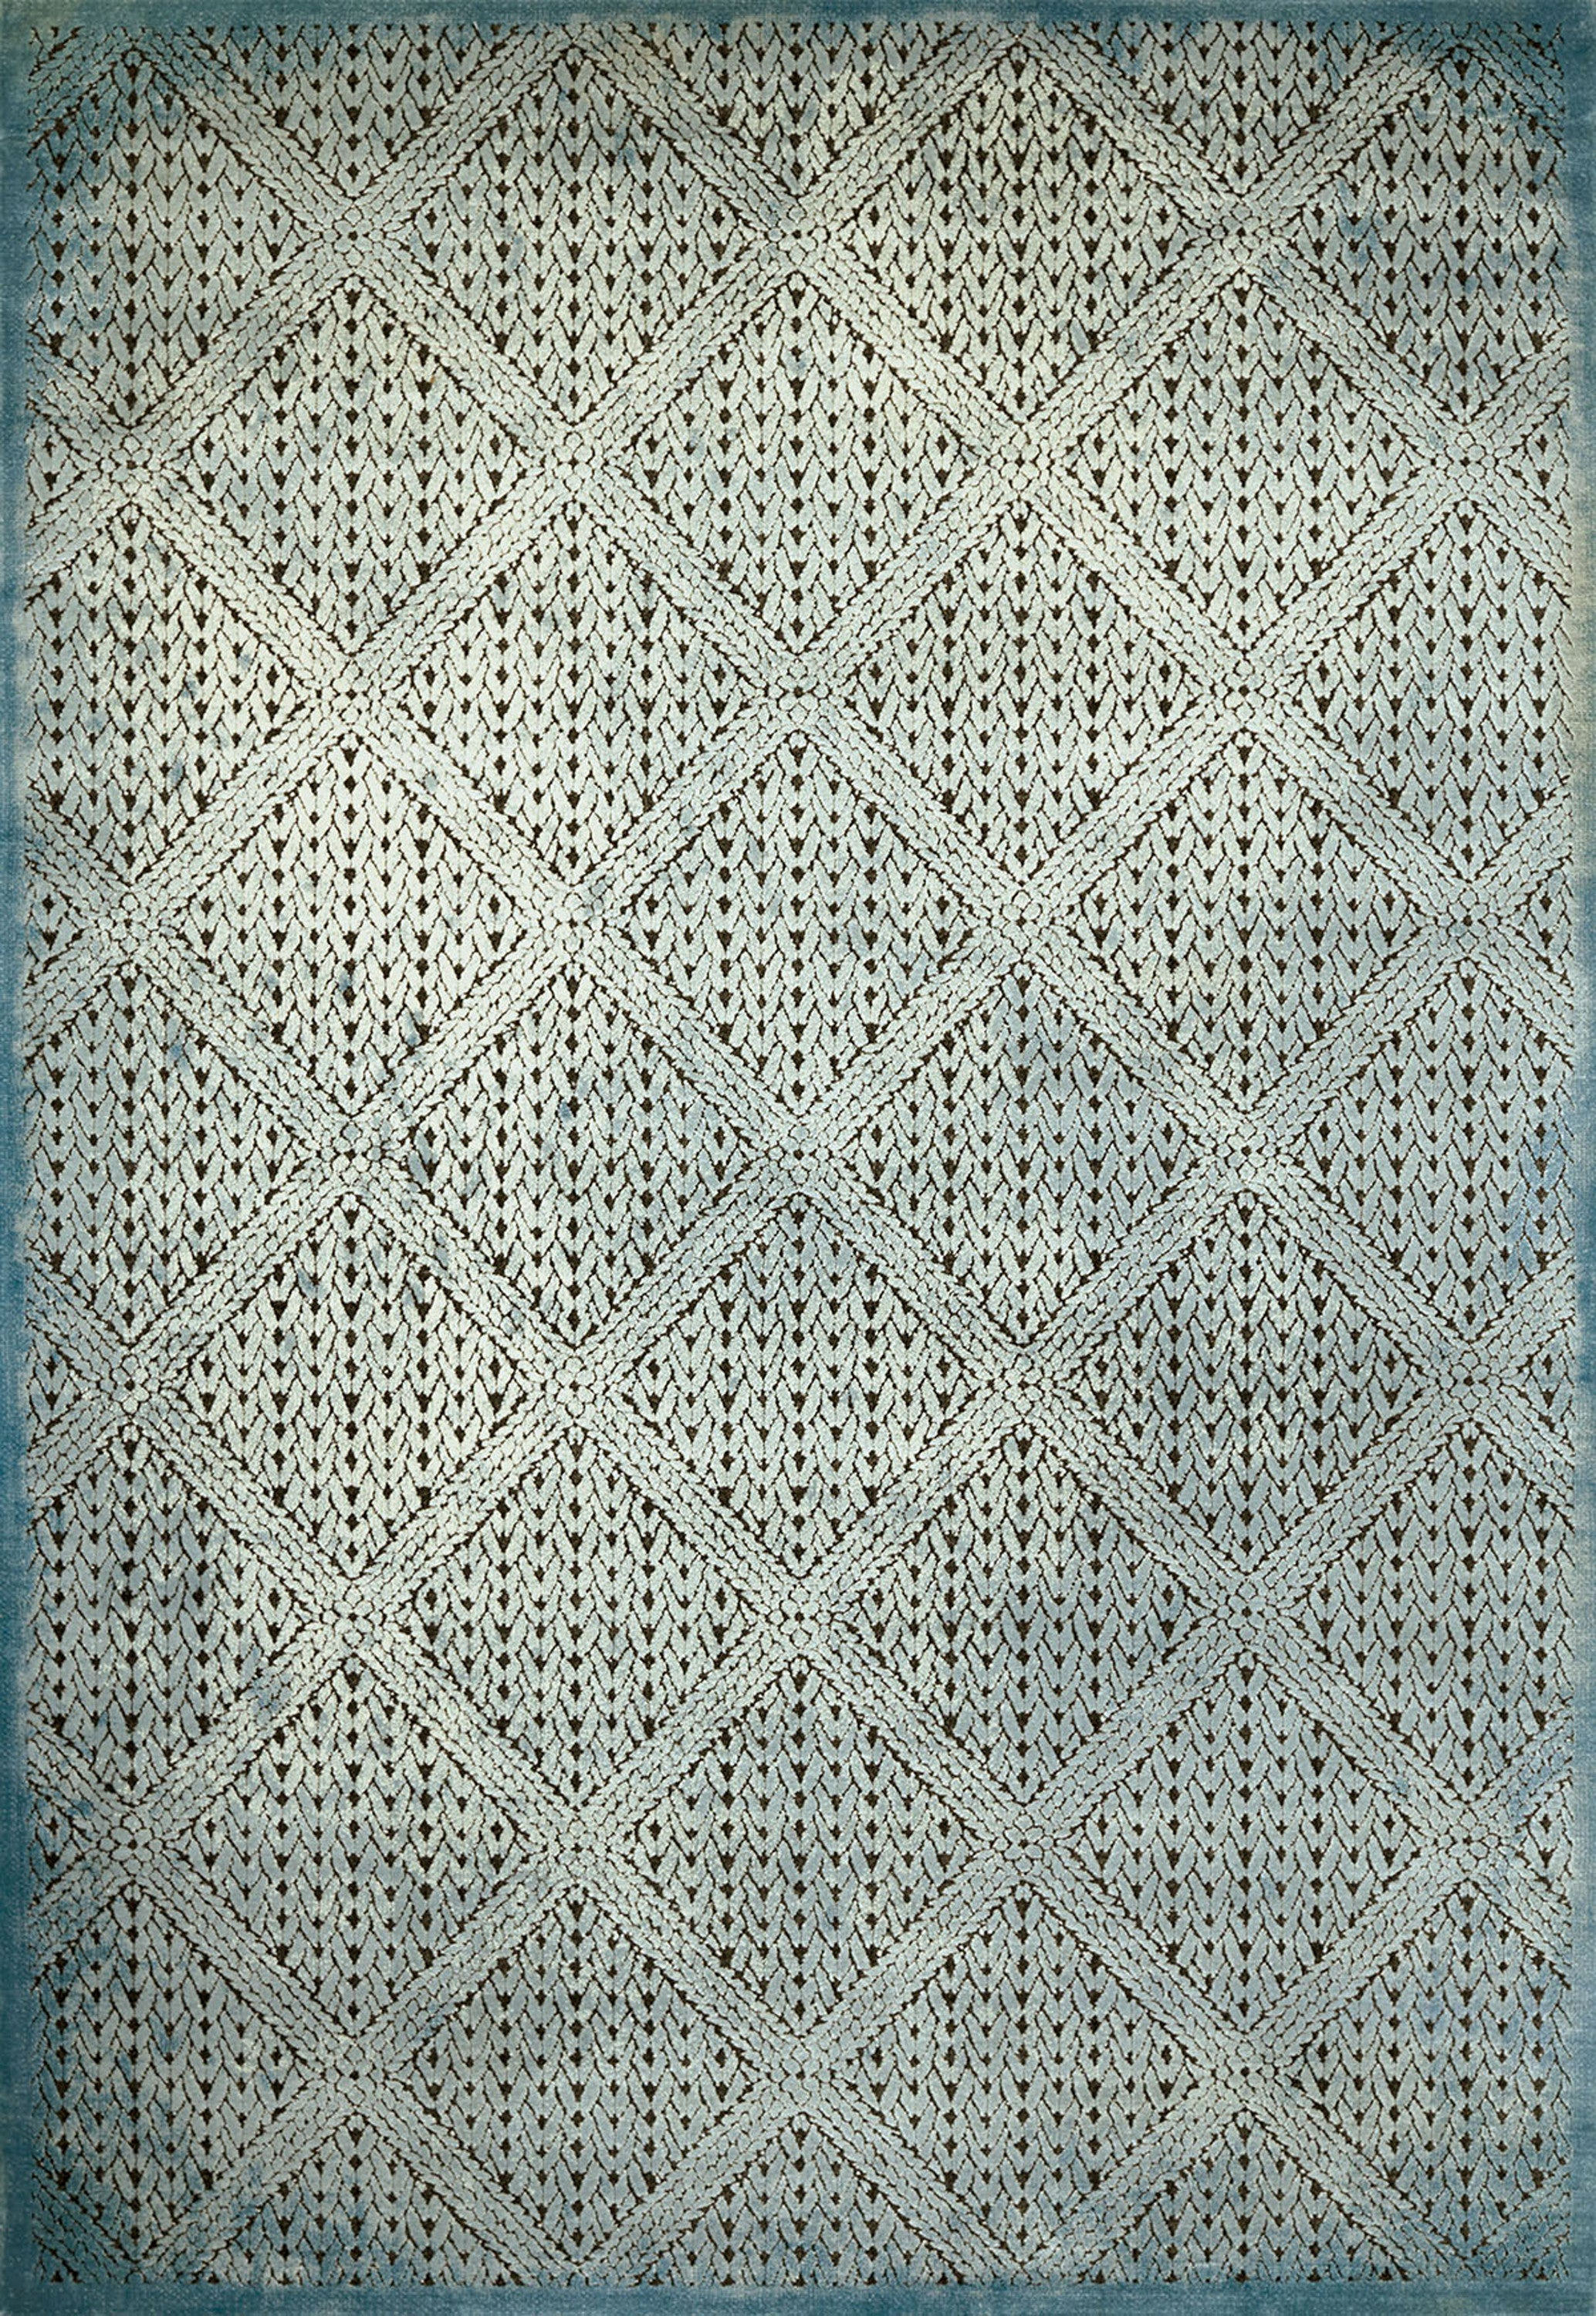 United Weavers - Weathered Treasure Rug Collection - DEVONSHIRE AQUA (1800-40563)